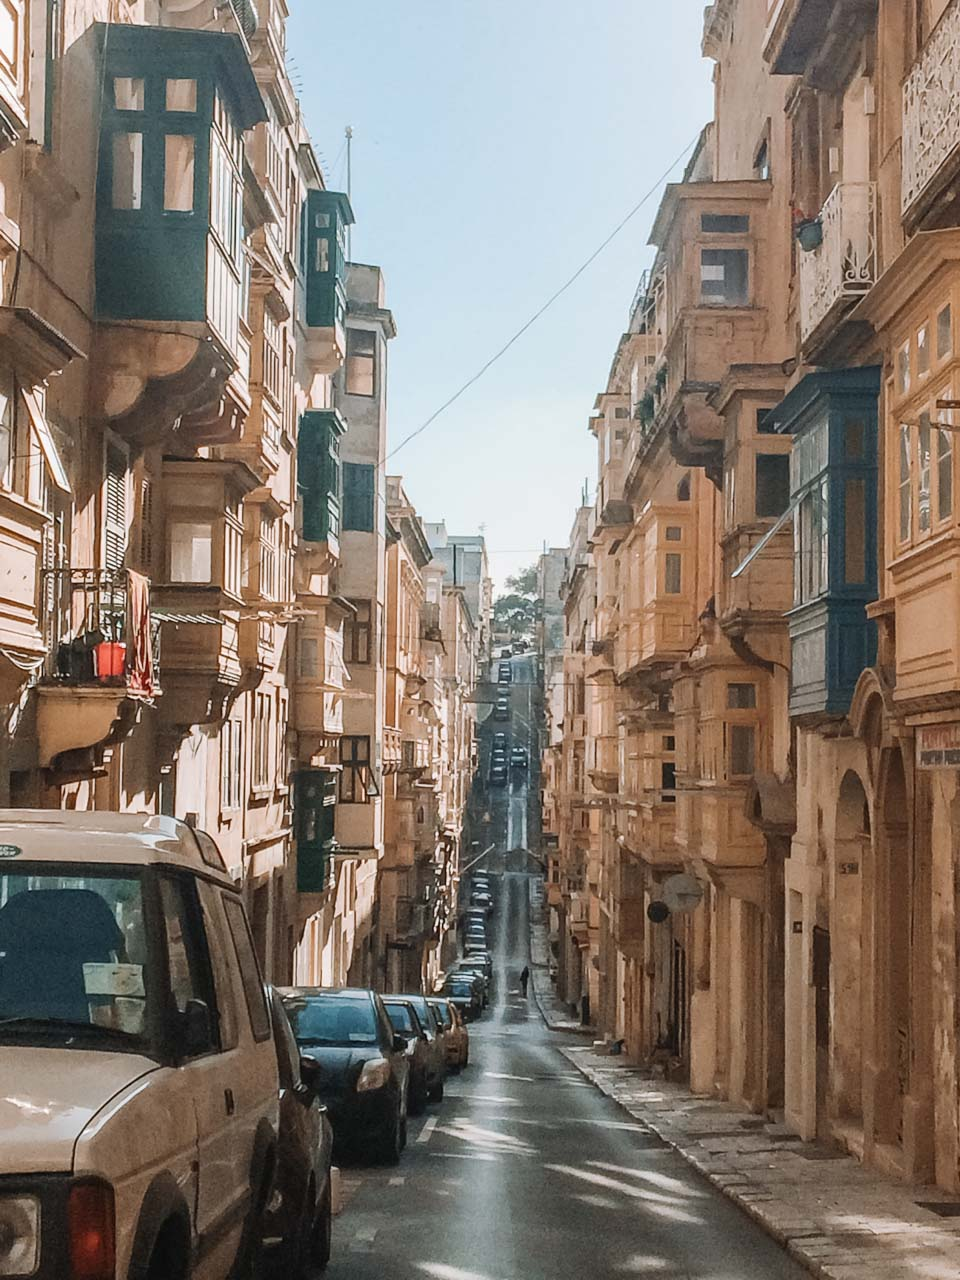 A street lined with cars in Valletta, Malta